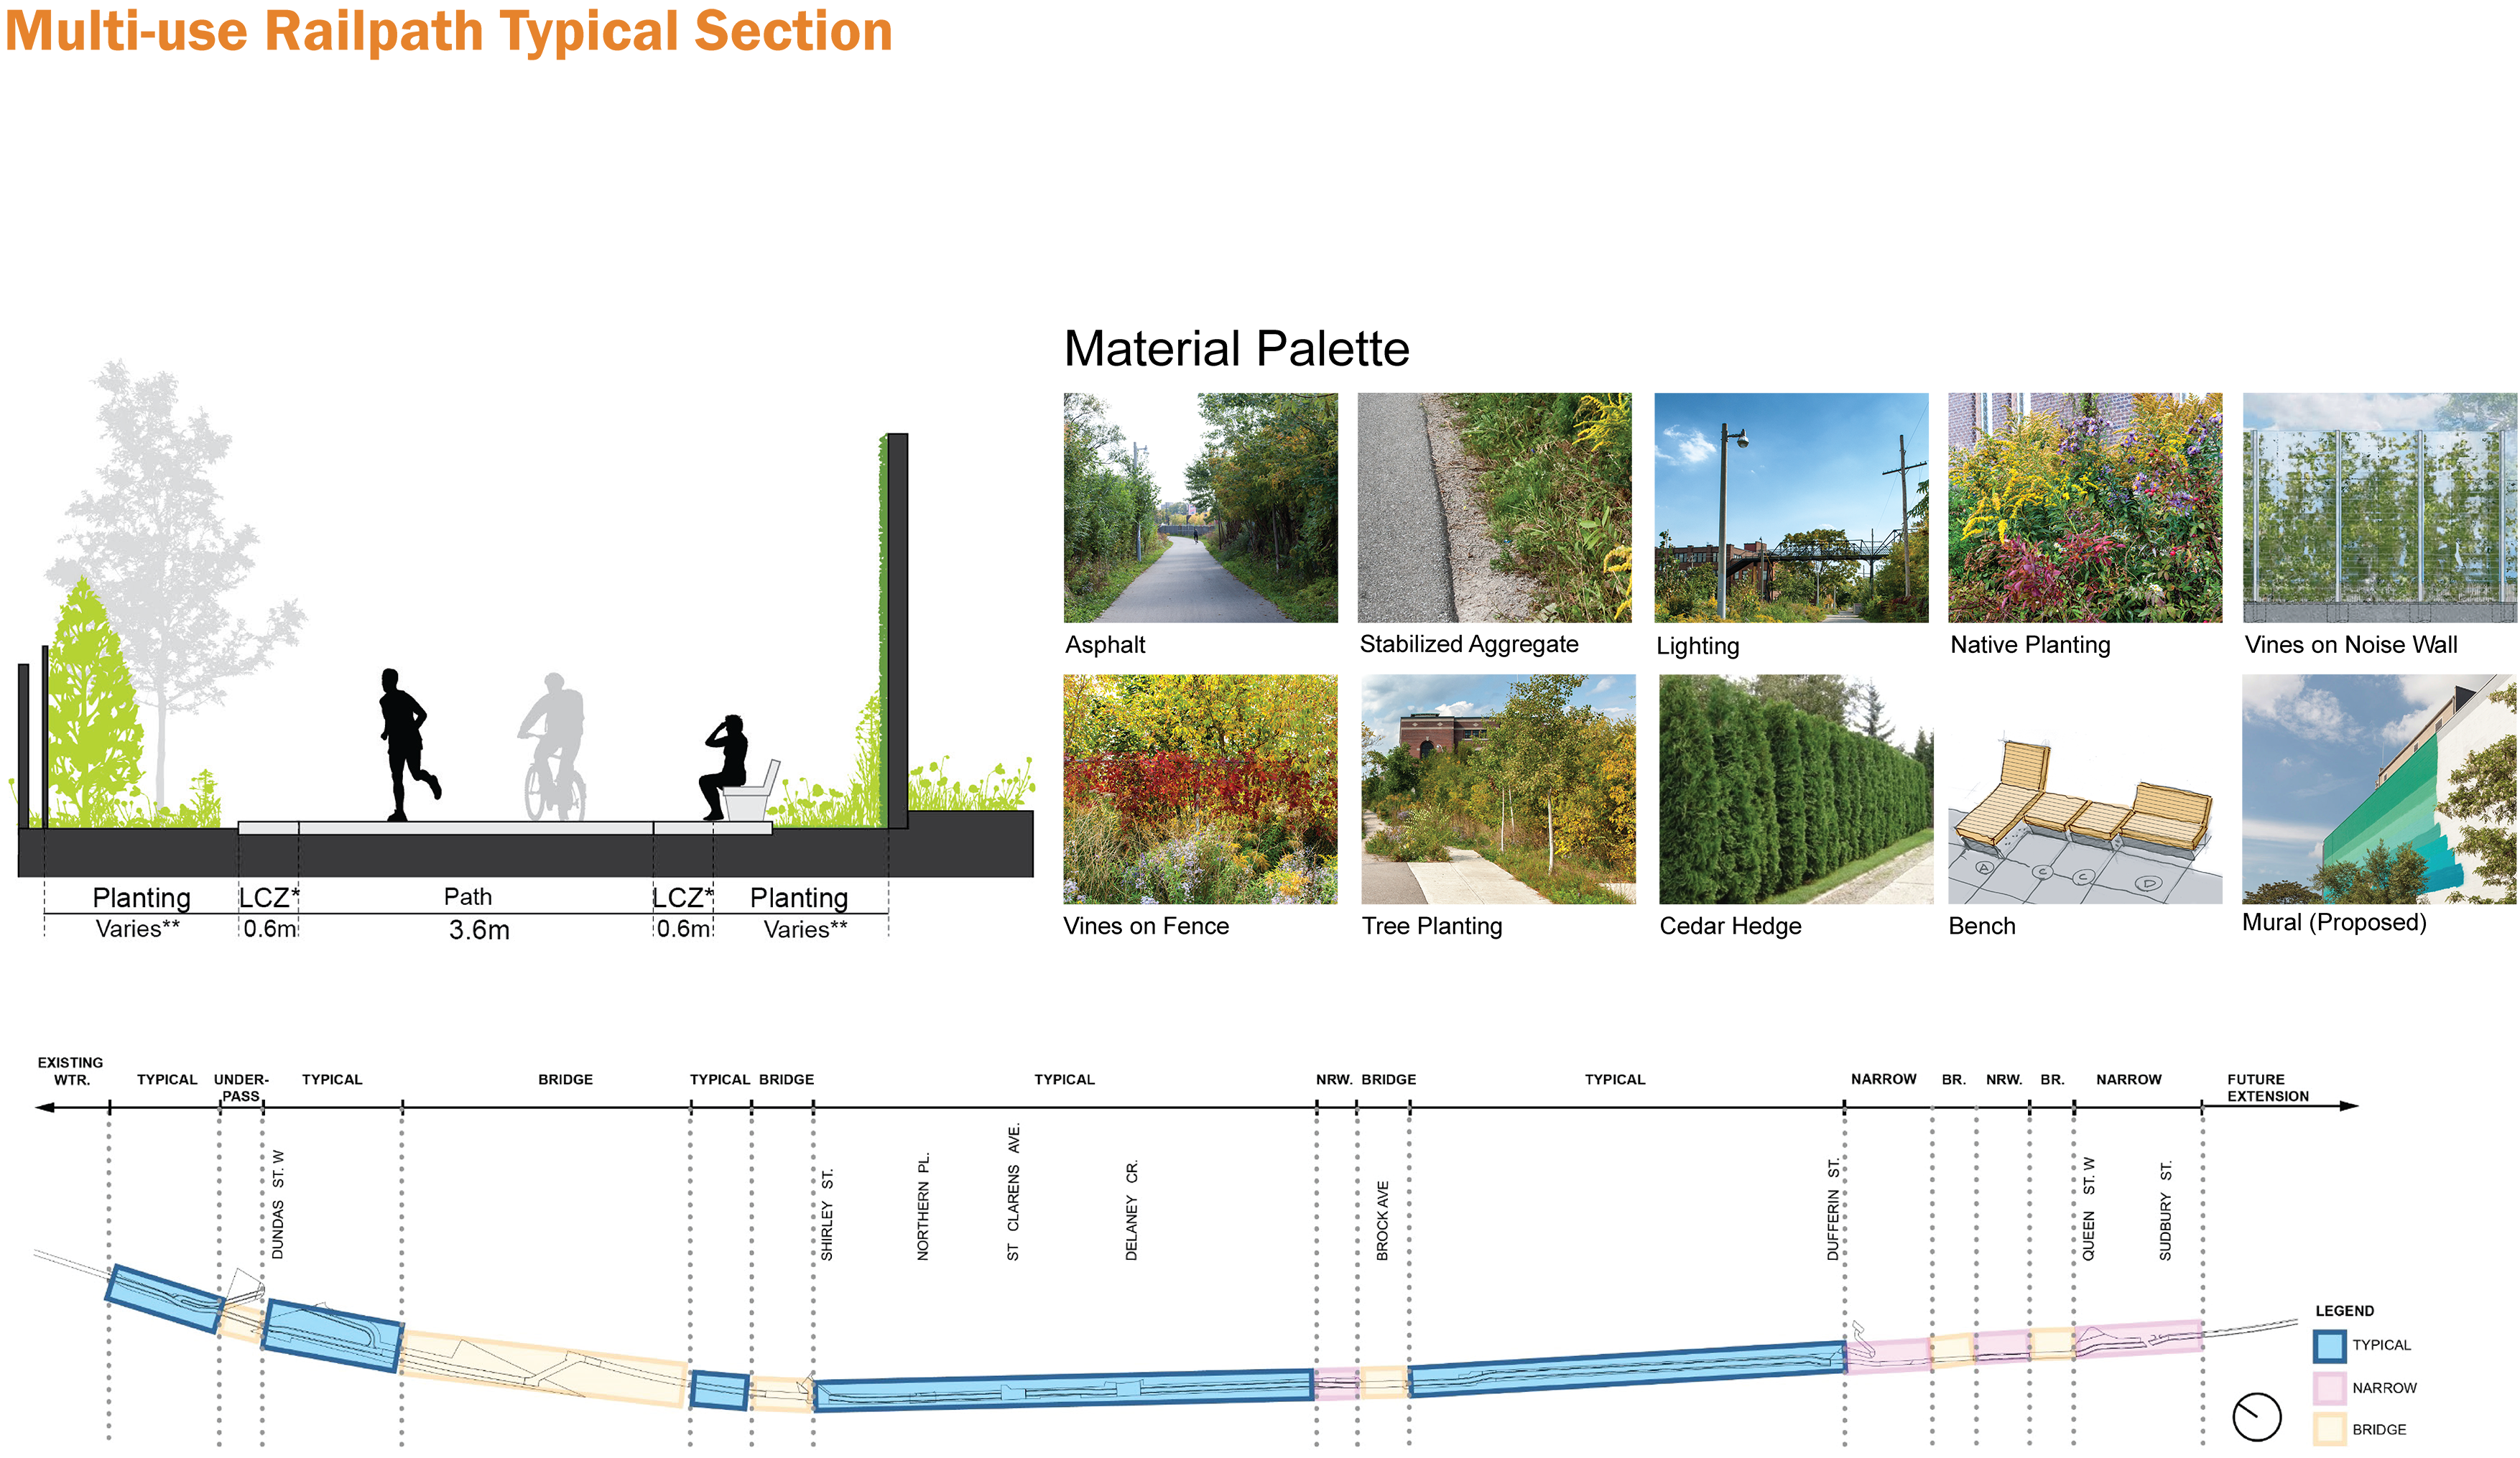 Typical section details for the West Toronto Railpath Extension, including path dimensions, material palettes and planting